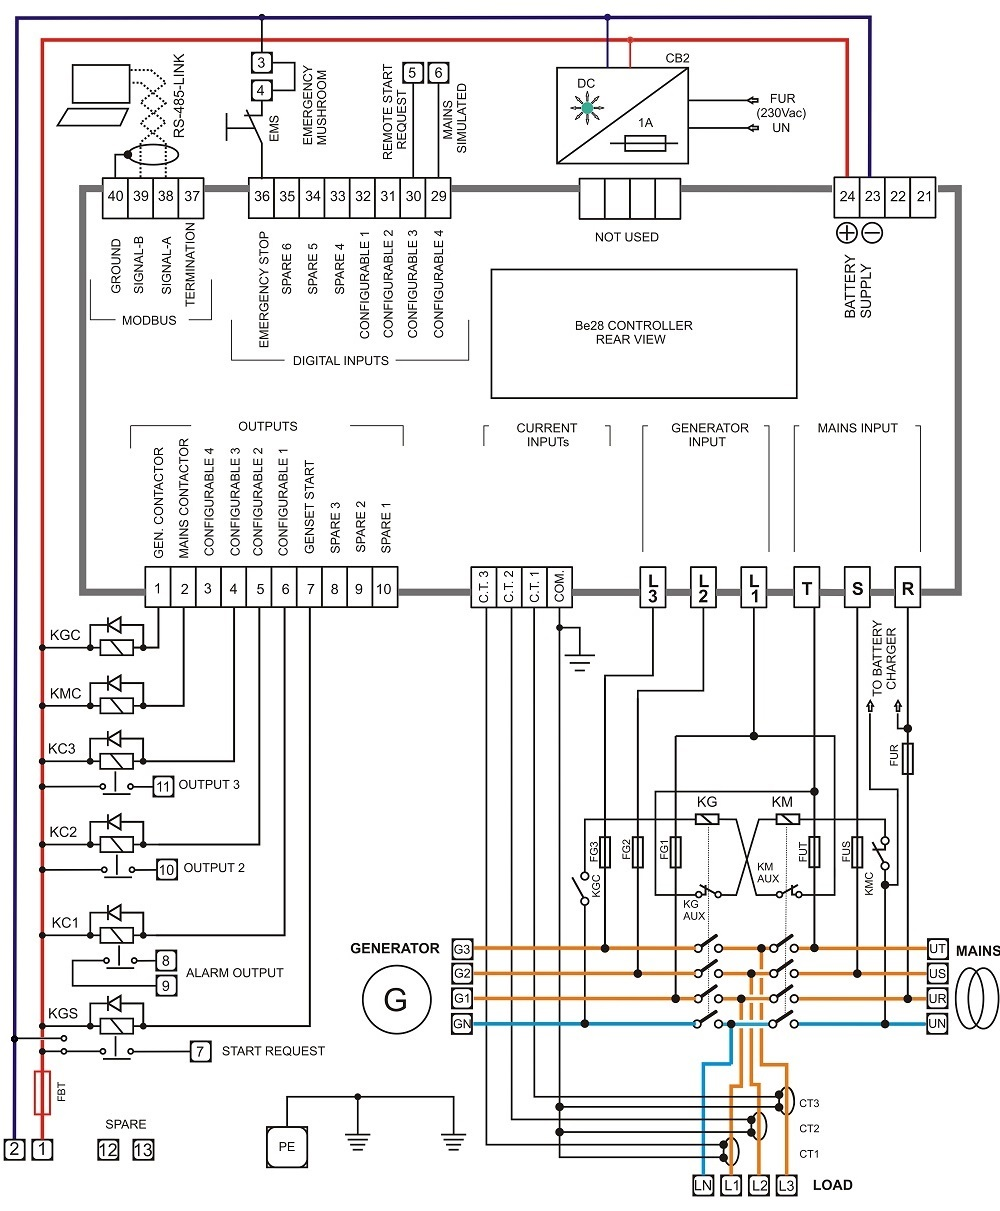 hot rod fuse panel wiring diagram ats panel wiring diagram generators ats panel – genset controller